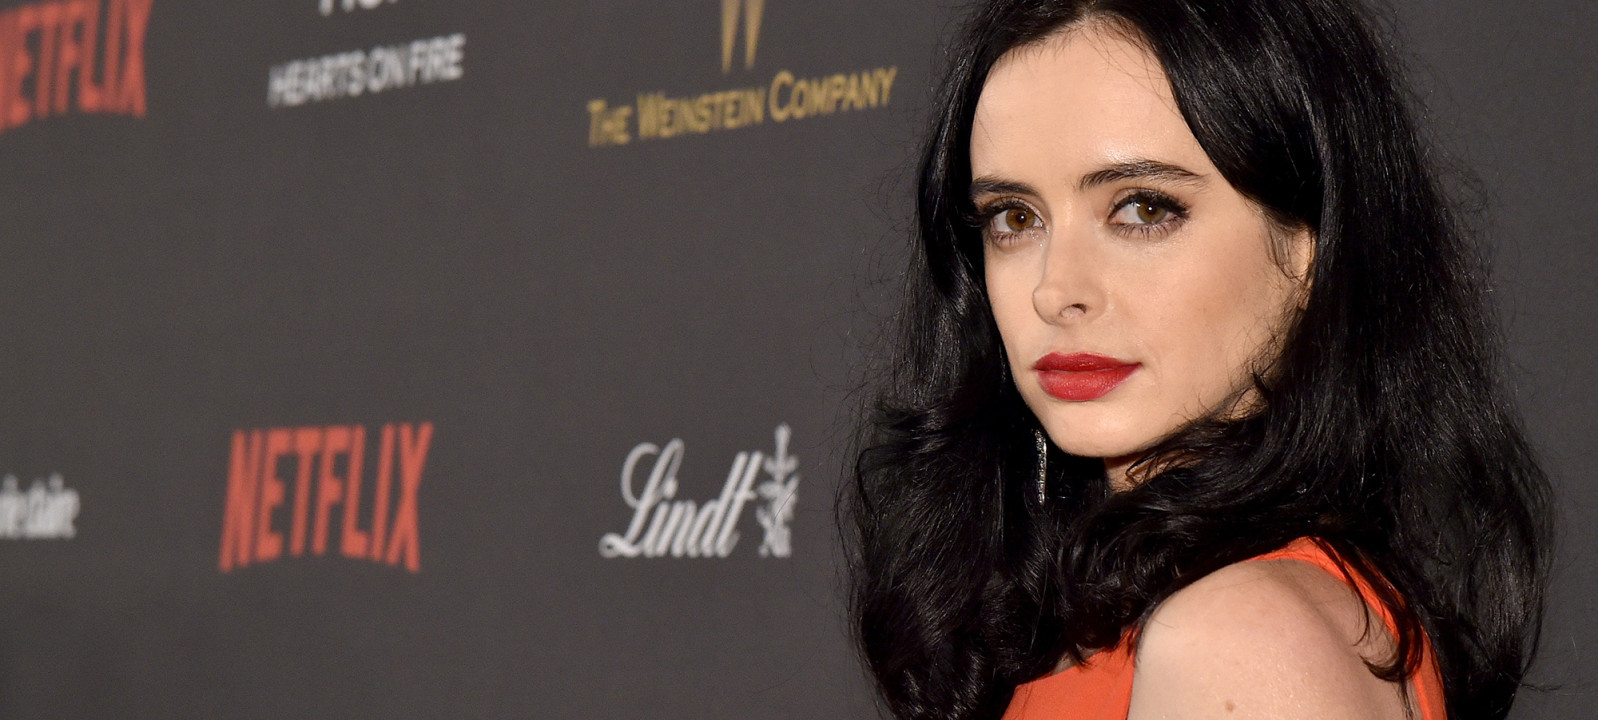 The Weinstein Company And Netflix Golden Globe Party, Presented With DeLeon Tequila, Laura Mercier, Lindt Chocolate, Marie Claire And Hearts On Fire – Red Carpet